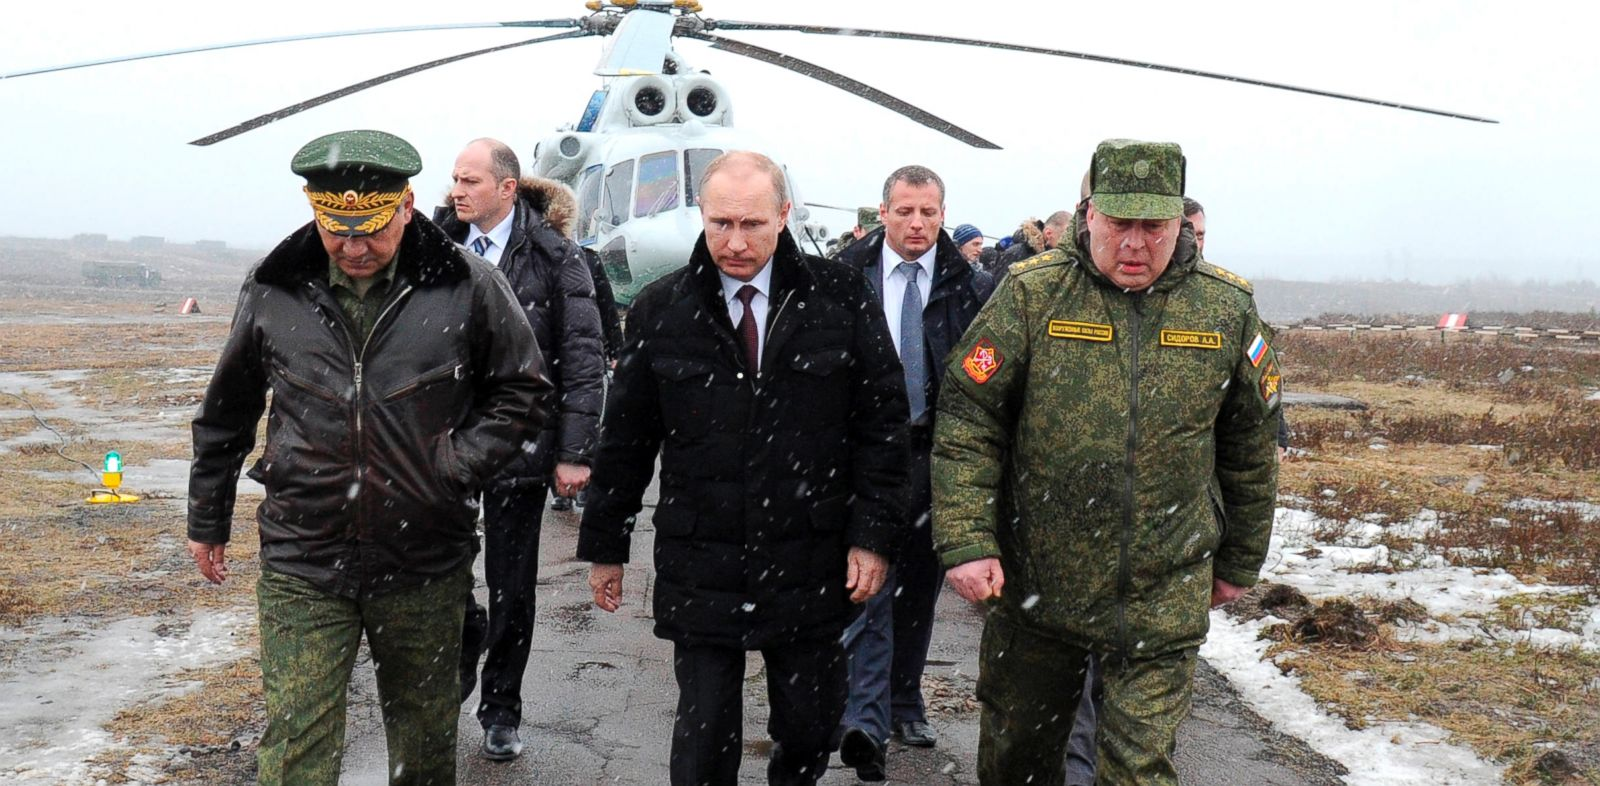 PHOTO: Russian President Vladimir Putin, center, Defense Minister Sergei Shoigu, left, and the commander of the Western Military District Anatoly Sidorov, right, walk upon arrival to watch military exercise near St.Petersburg, Russia, March 3, 2014.